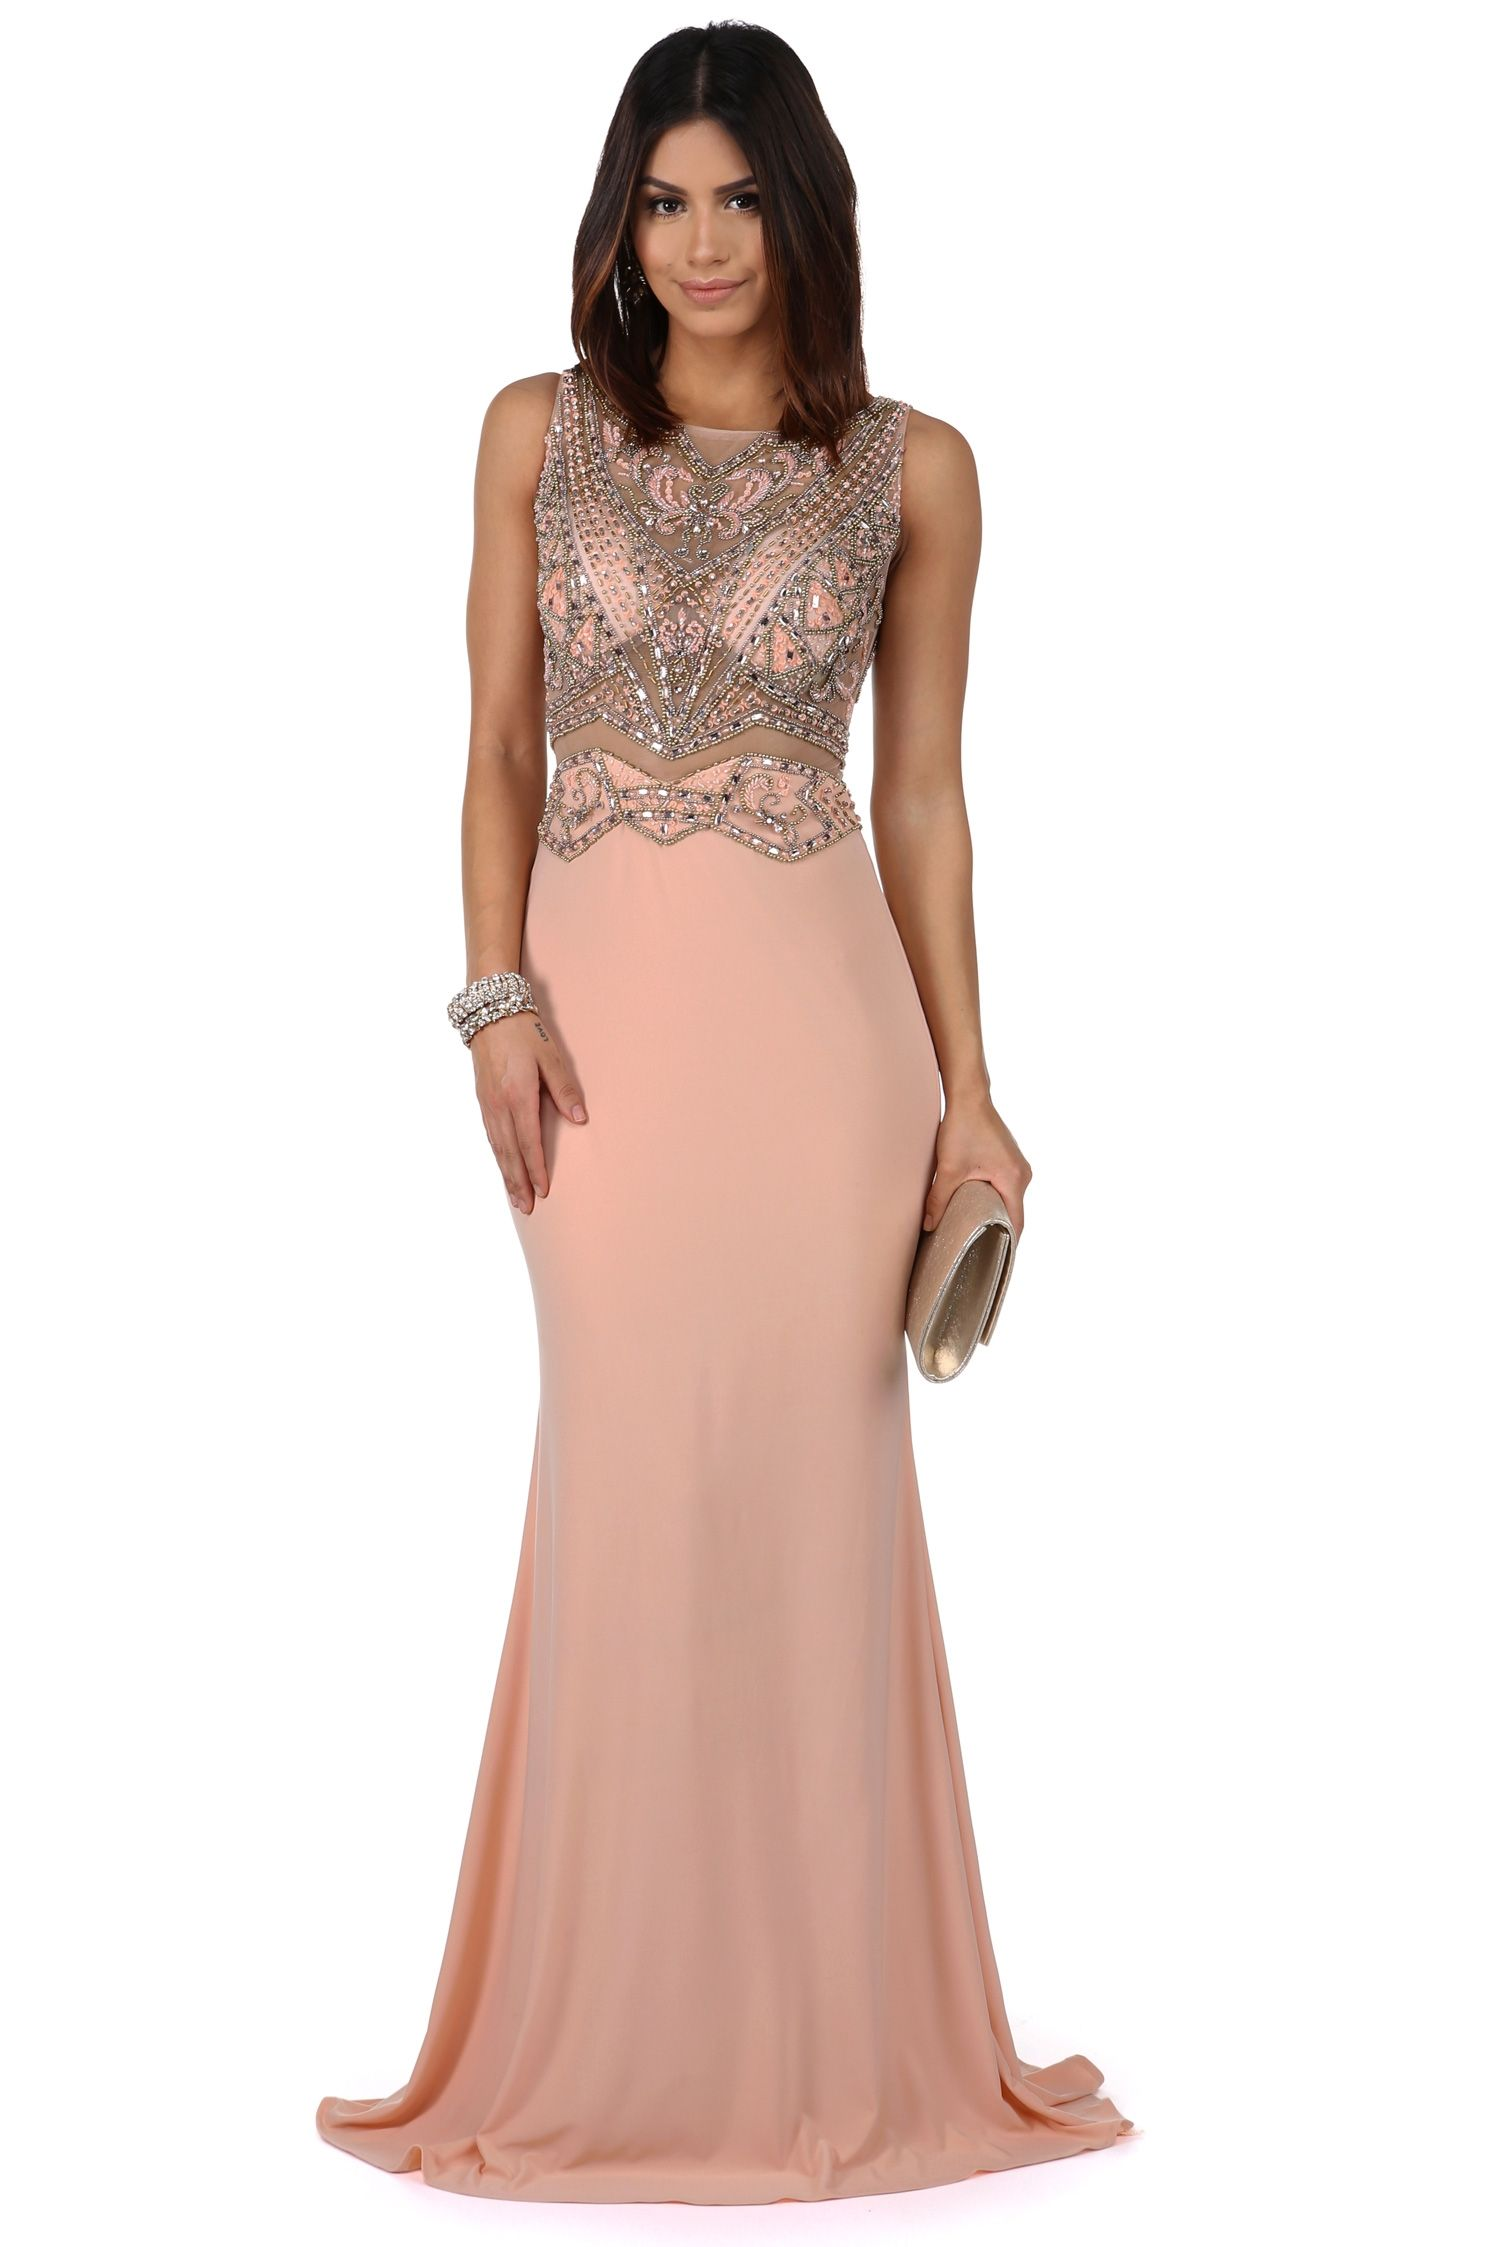 63ecb891e659 FINAL SALE- Amara Pink Formal Dress | windsor | Dresses I like ...